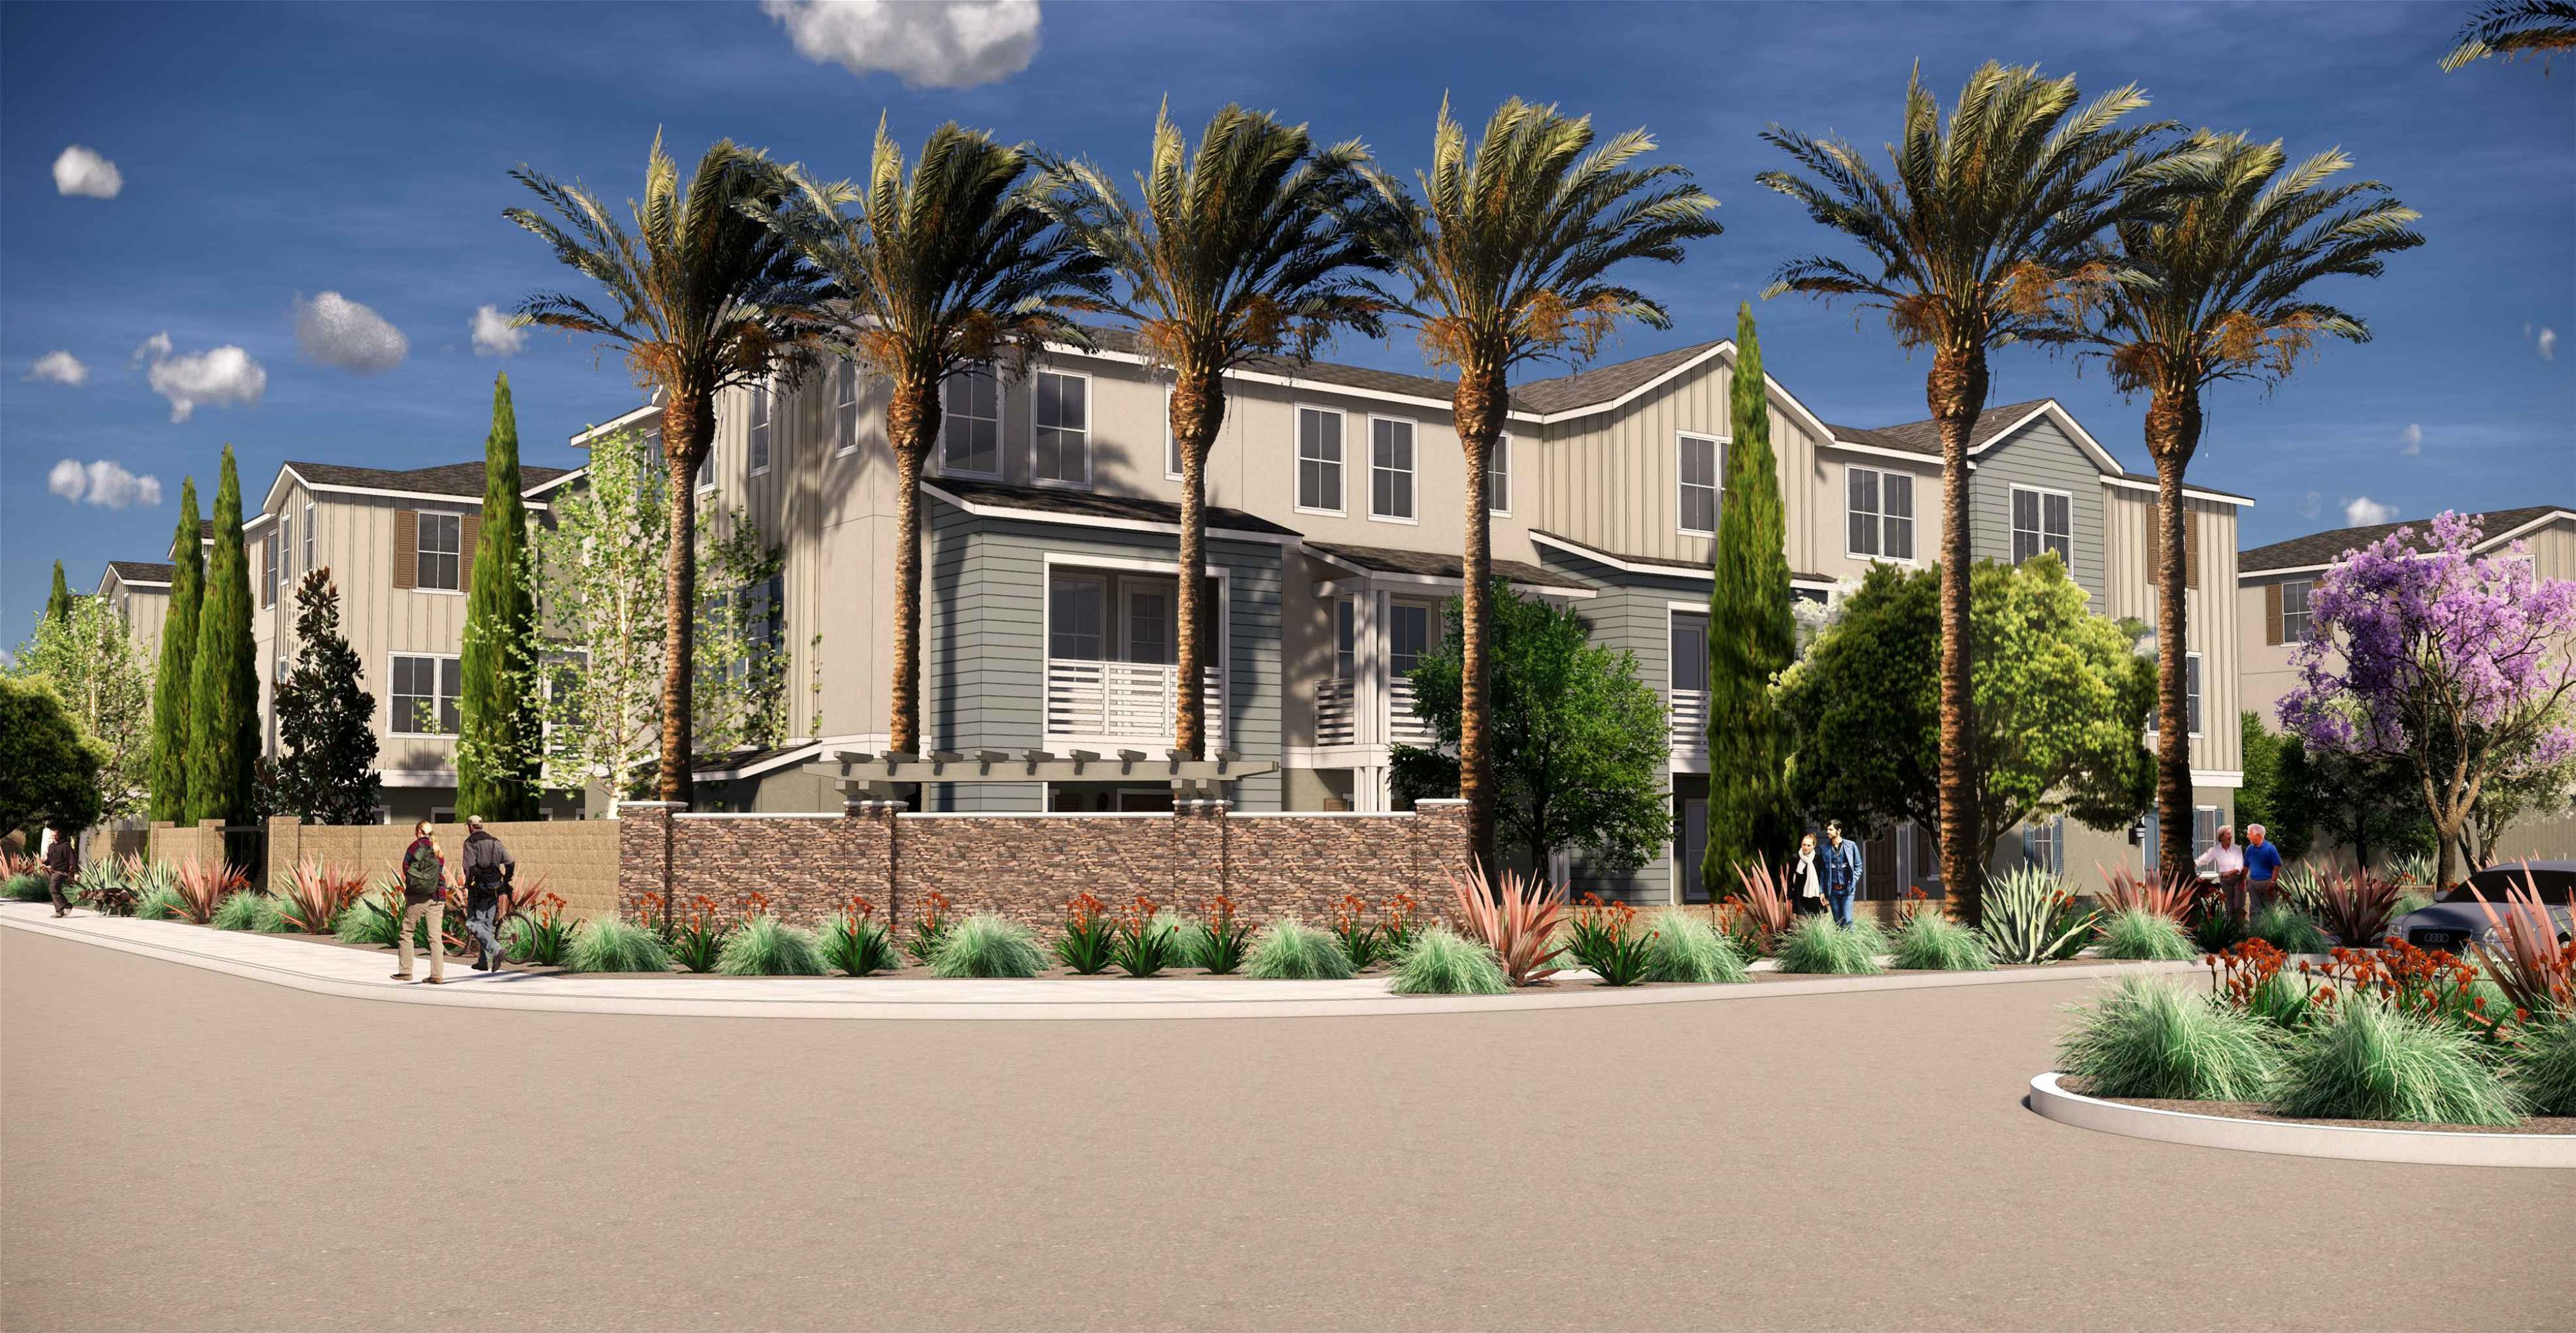 'Upton' by Brandywine Homes-Upton in Los Angeles